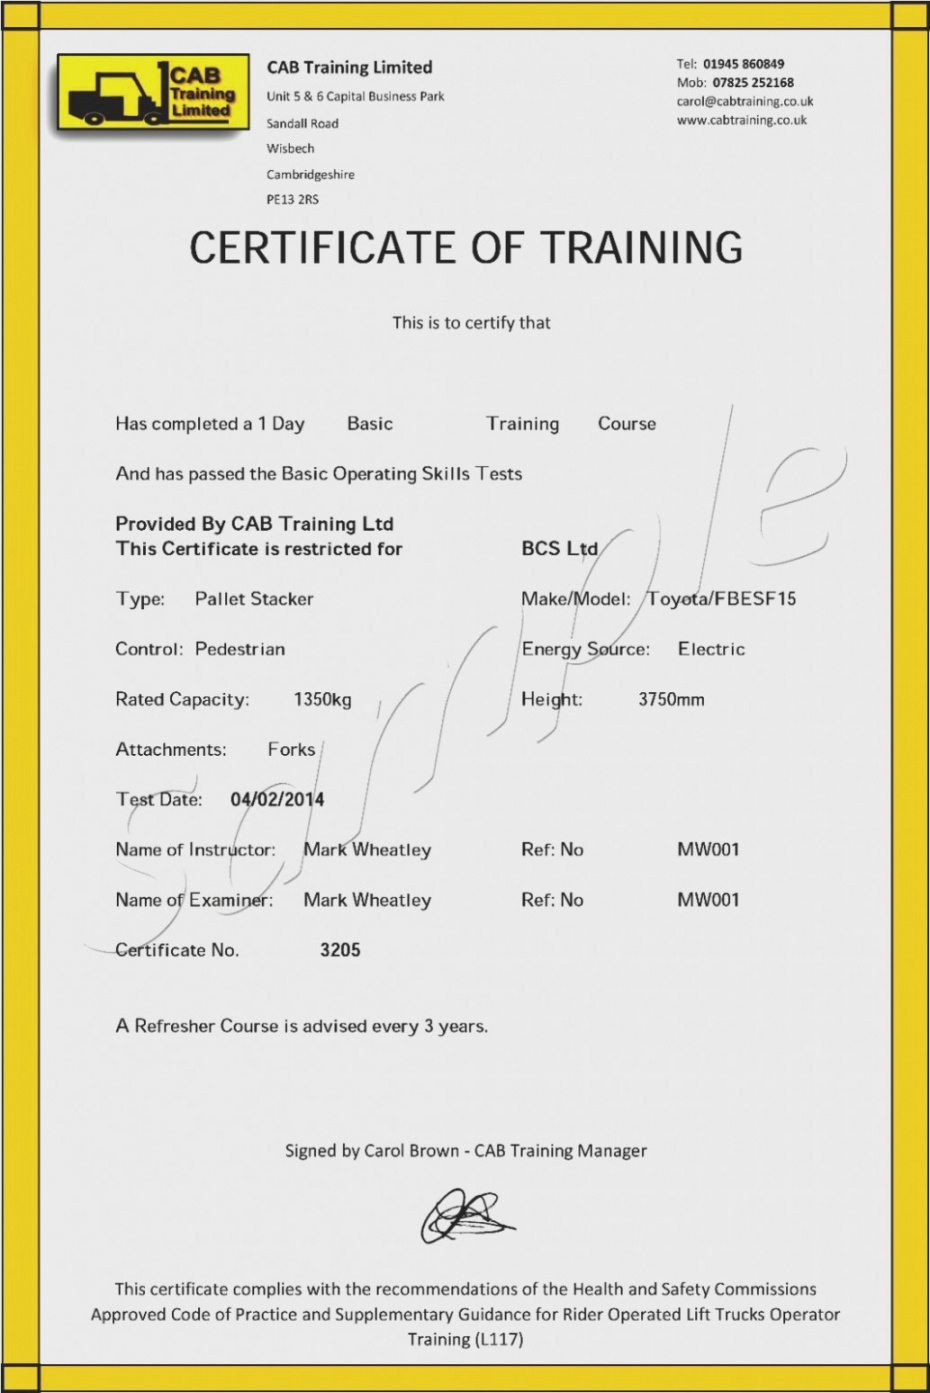 Forklift Training Certificate Template Free Awesome forklift Certification Certificate Template